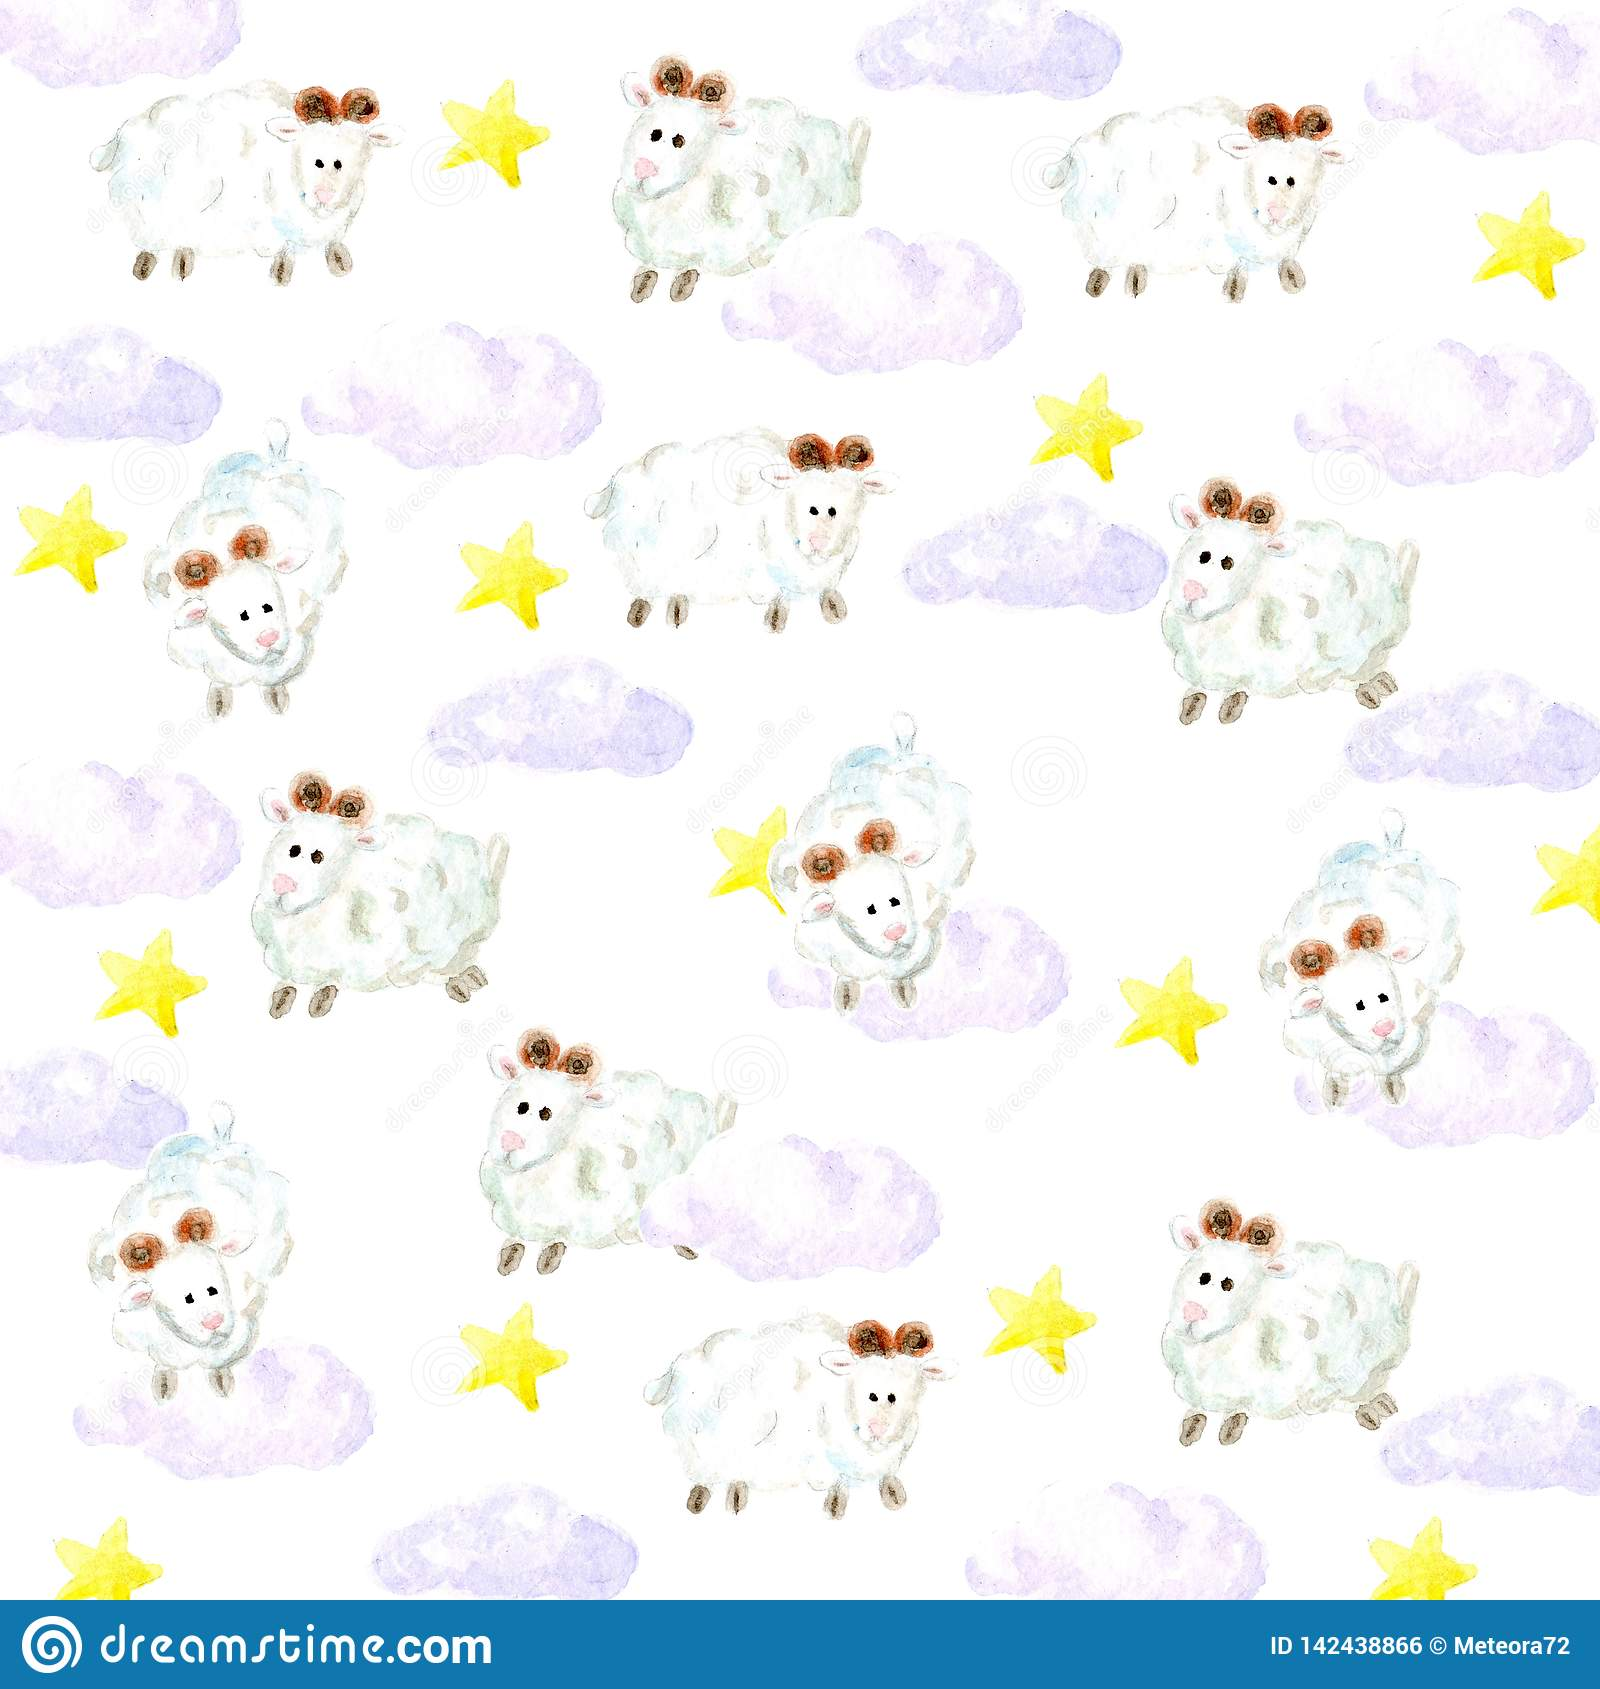 Watercolor sheeps, stars and clouds background